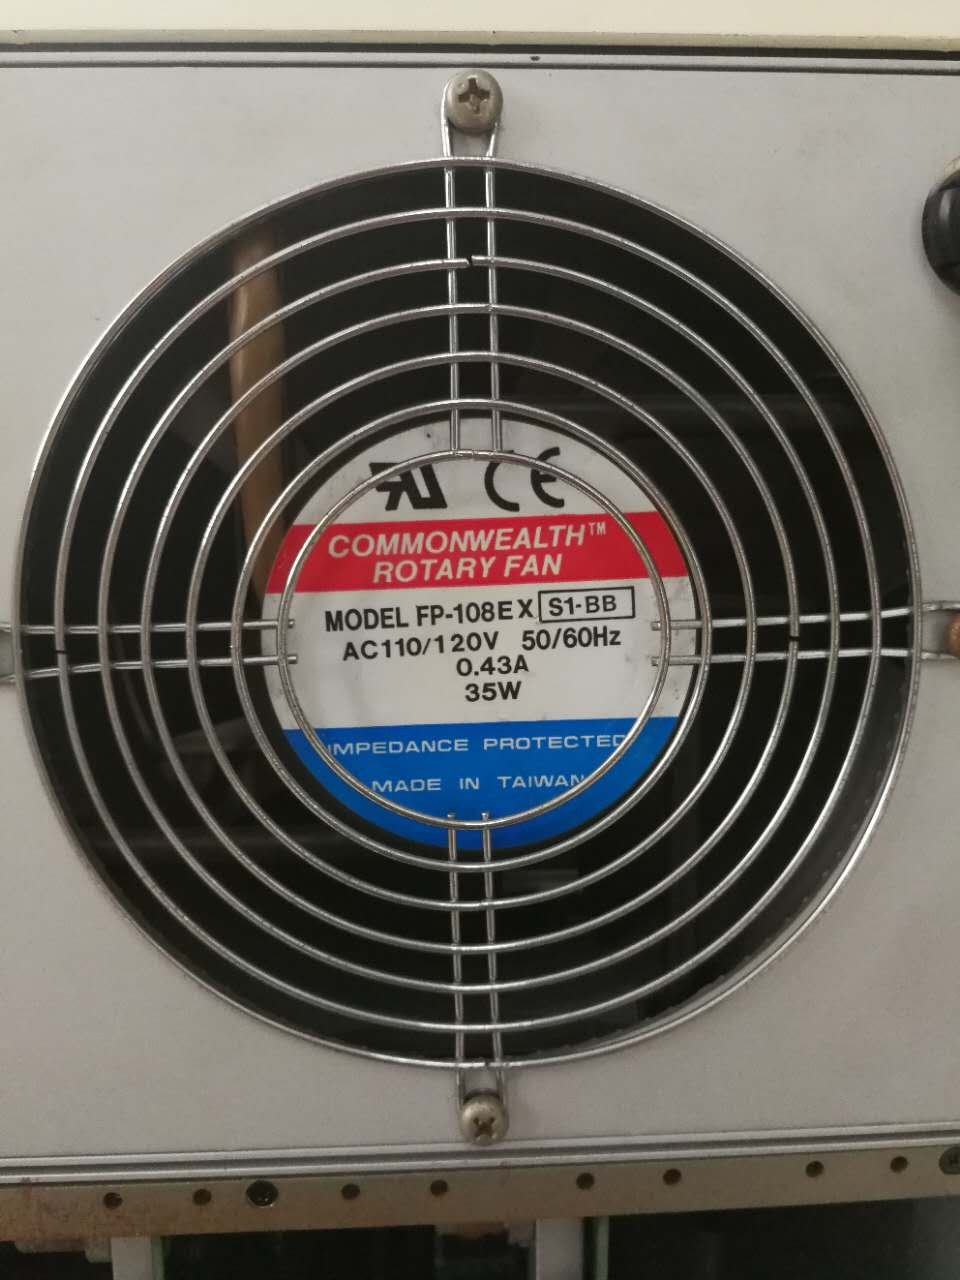 COMMONWEALTH ROTARY FAN FP-108EX 现货